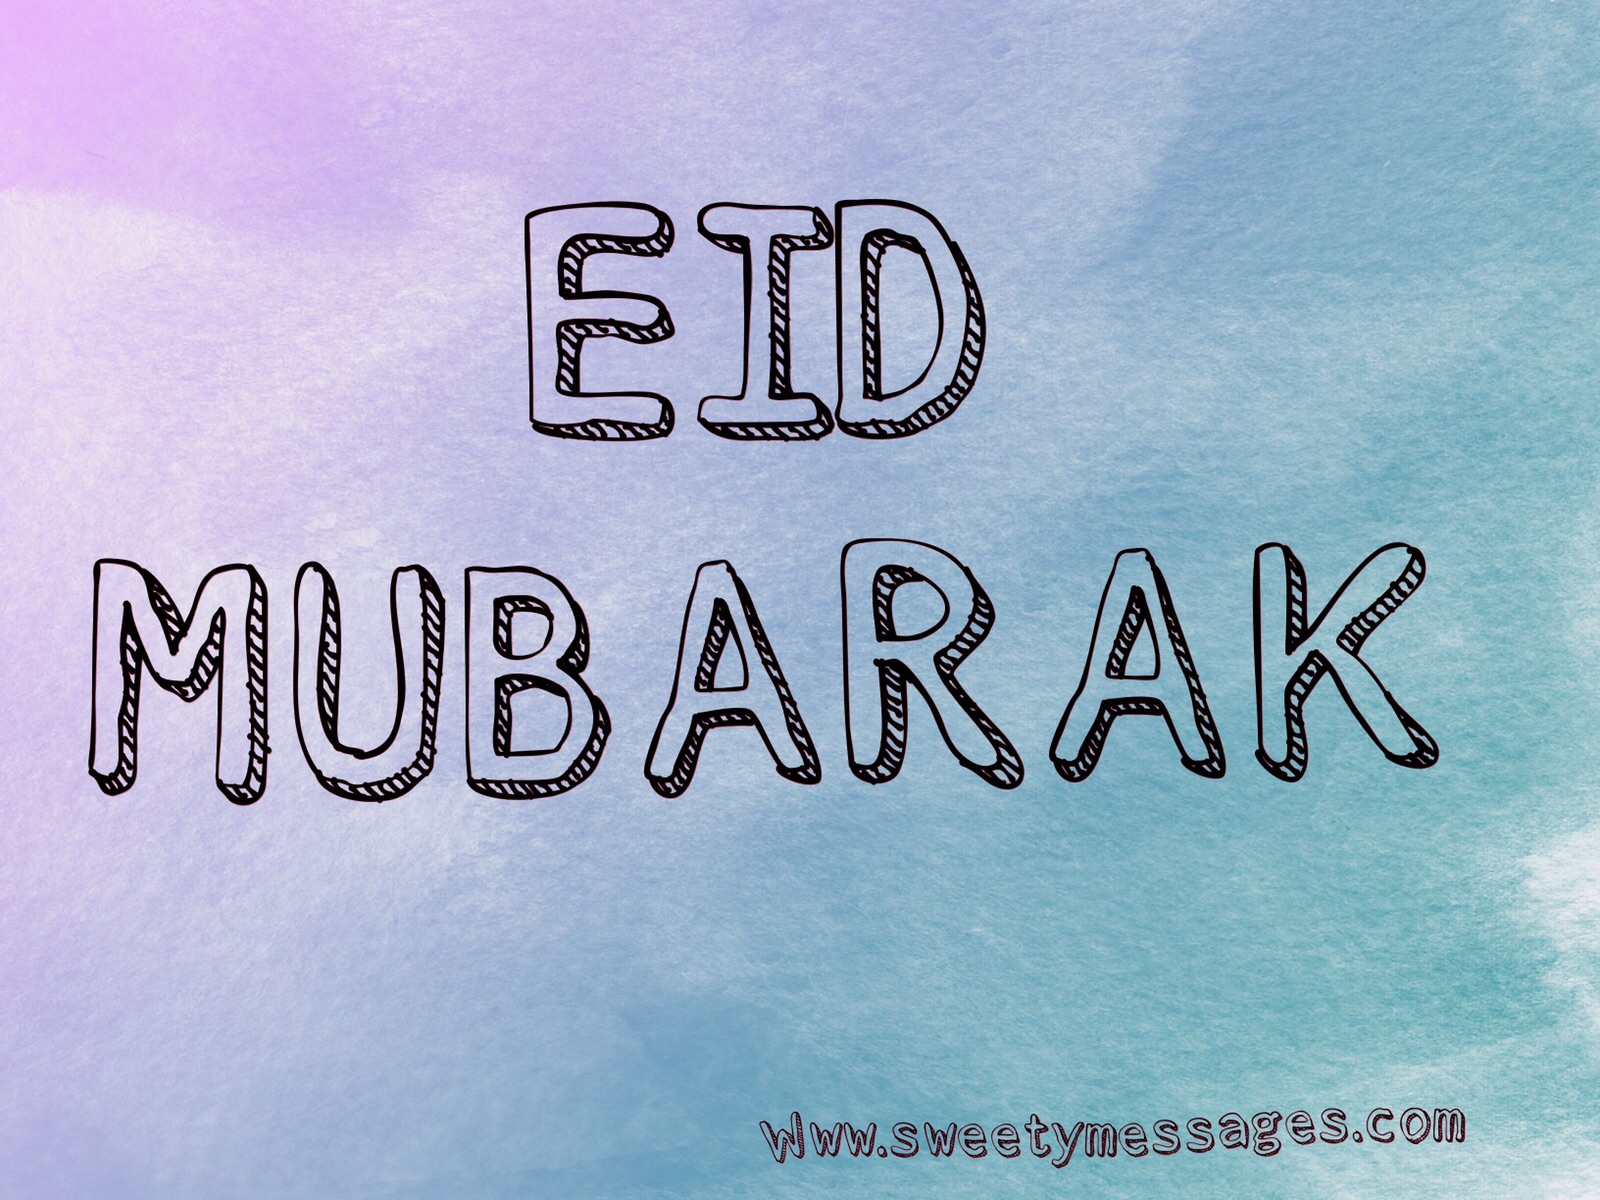 Happy Eid Mubarak Messages Beautiful Messages